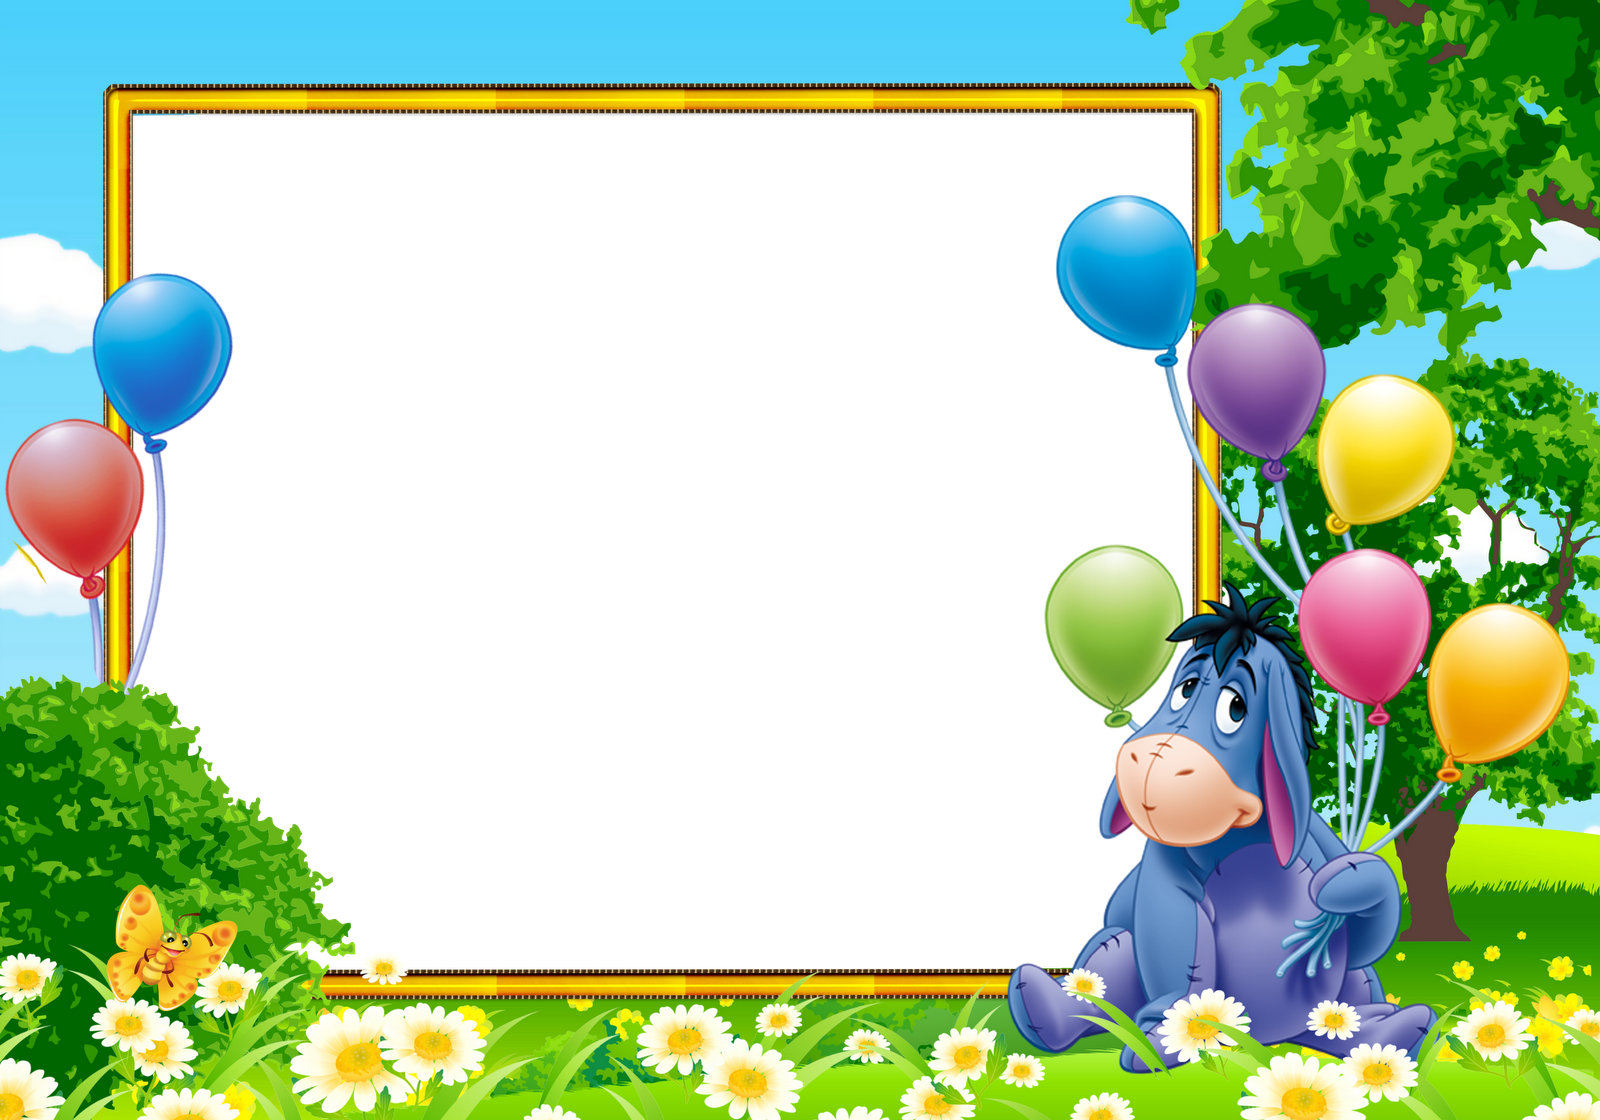 Winnie the pooh border clipart free Eeyore from Winnie the Pooh Kids Transparent Photo Frame ... free